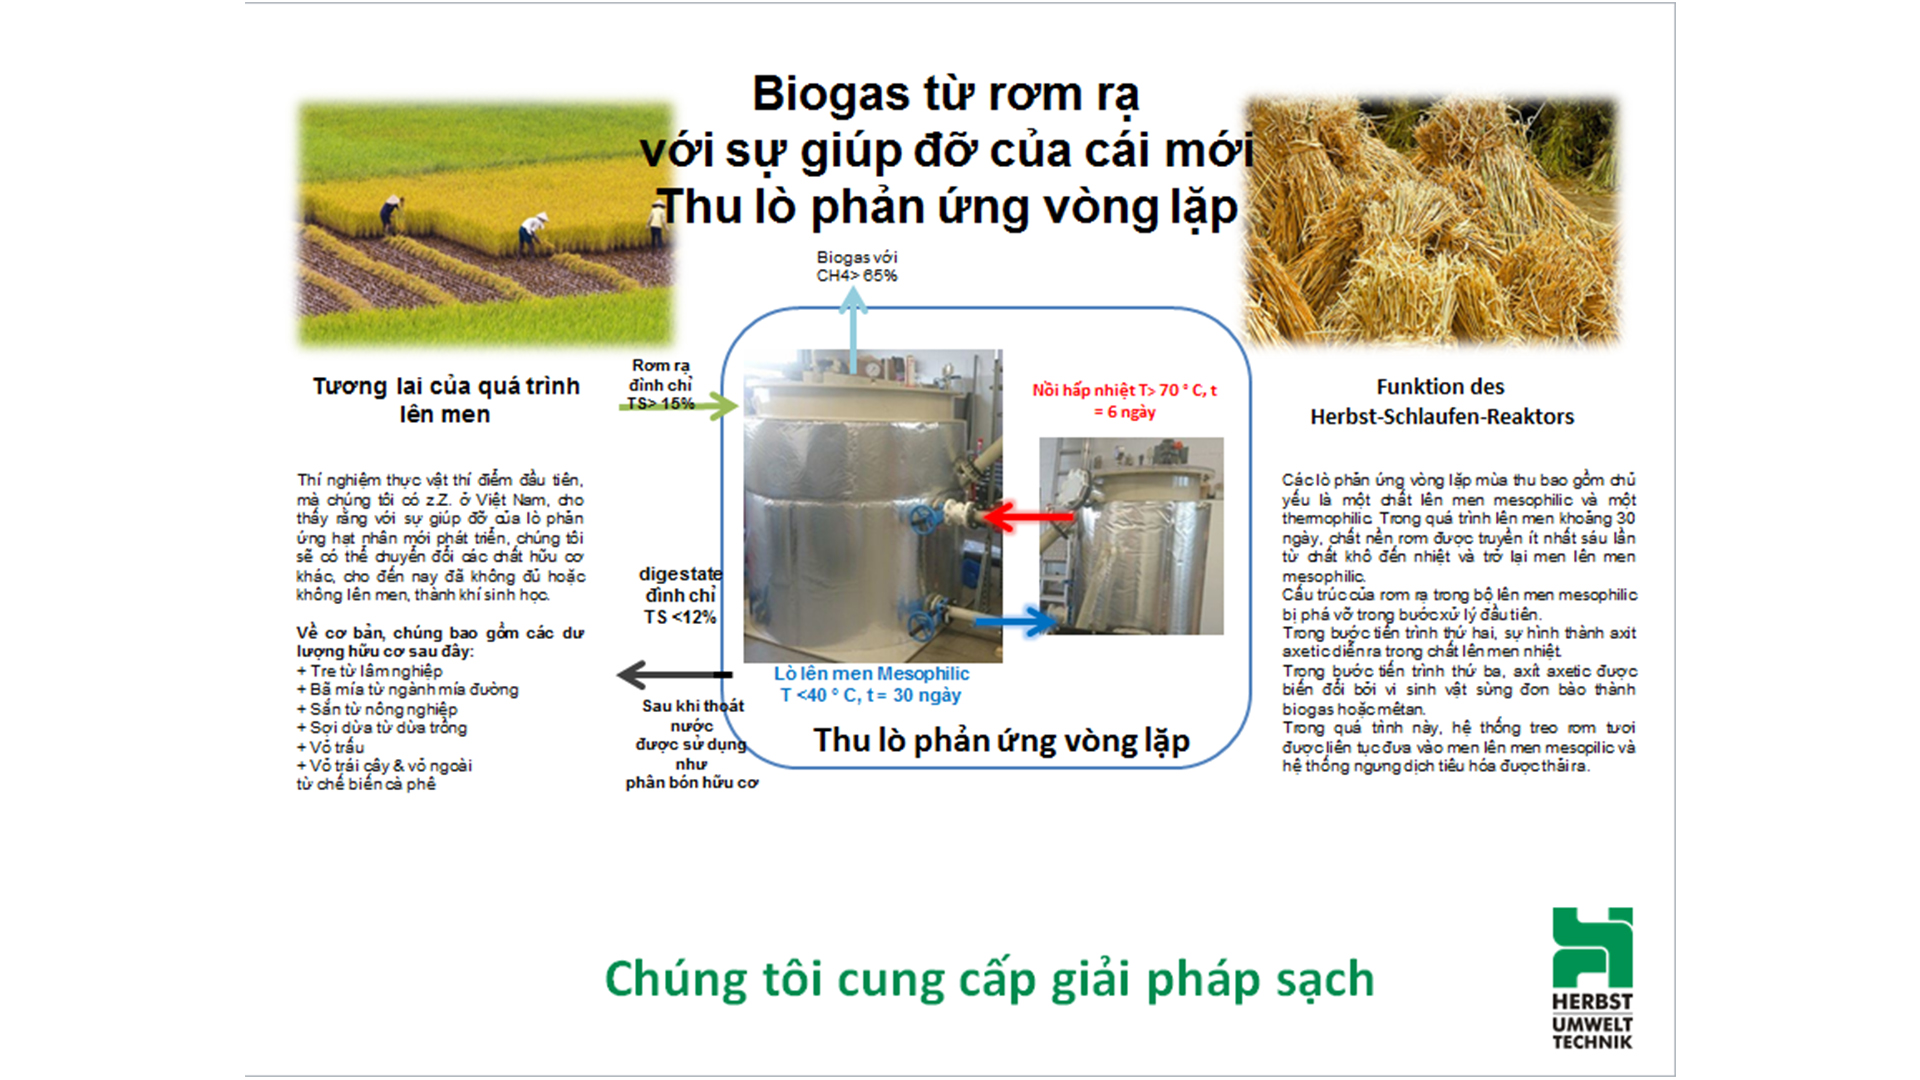 cong-nghe-biogas-tu-chat-thai-nong-nghiep-tien-tien-the-gioi